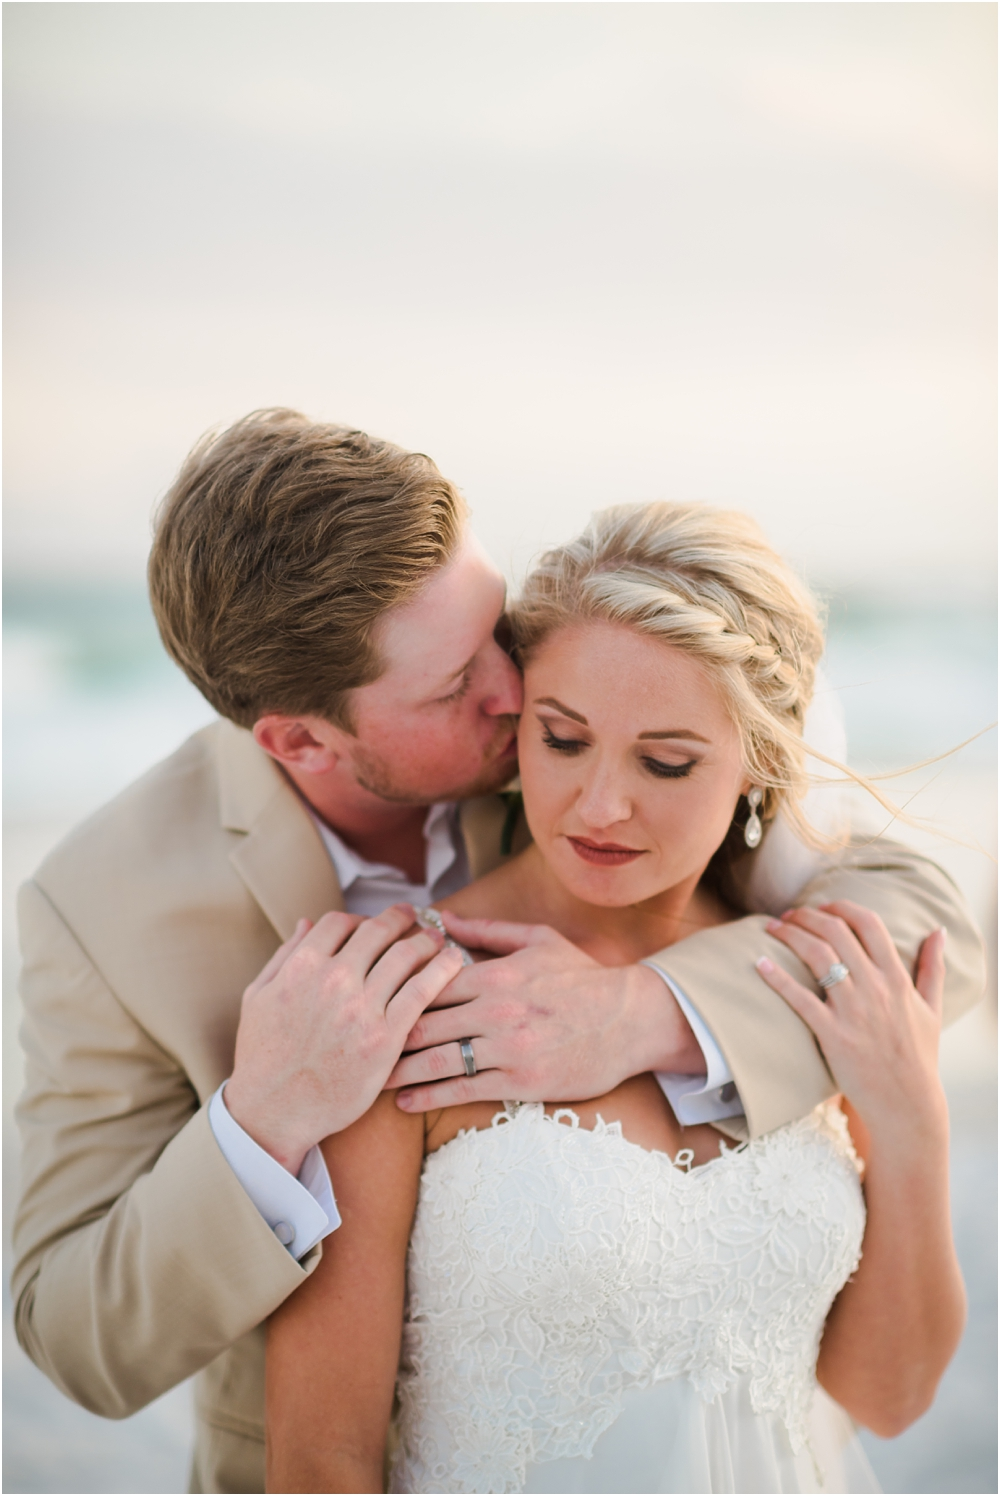 dillard-florida-wedding-photographer-panama-city-beach-dothan-tallahassee-kiersten-grant-photography-158.jpg